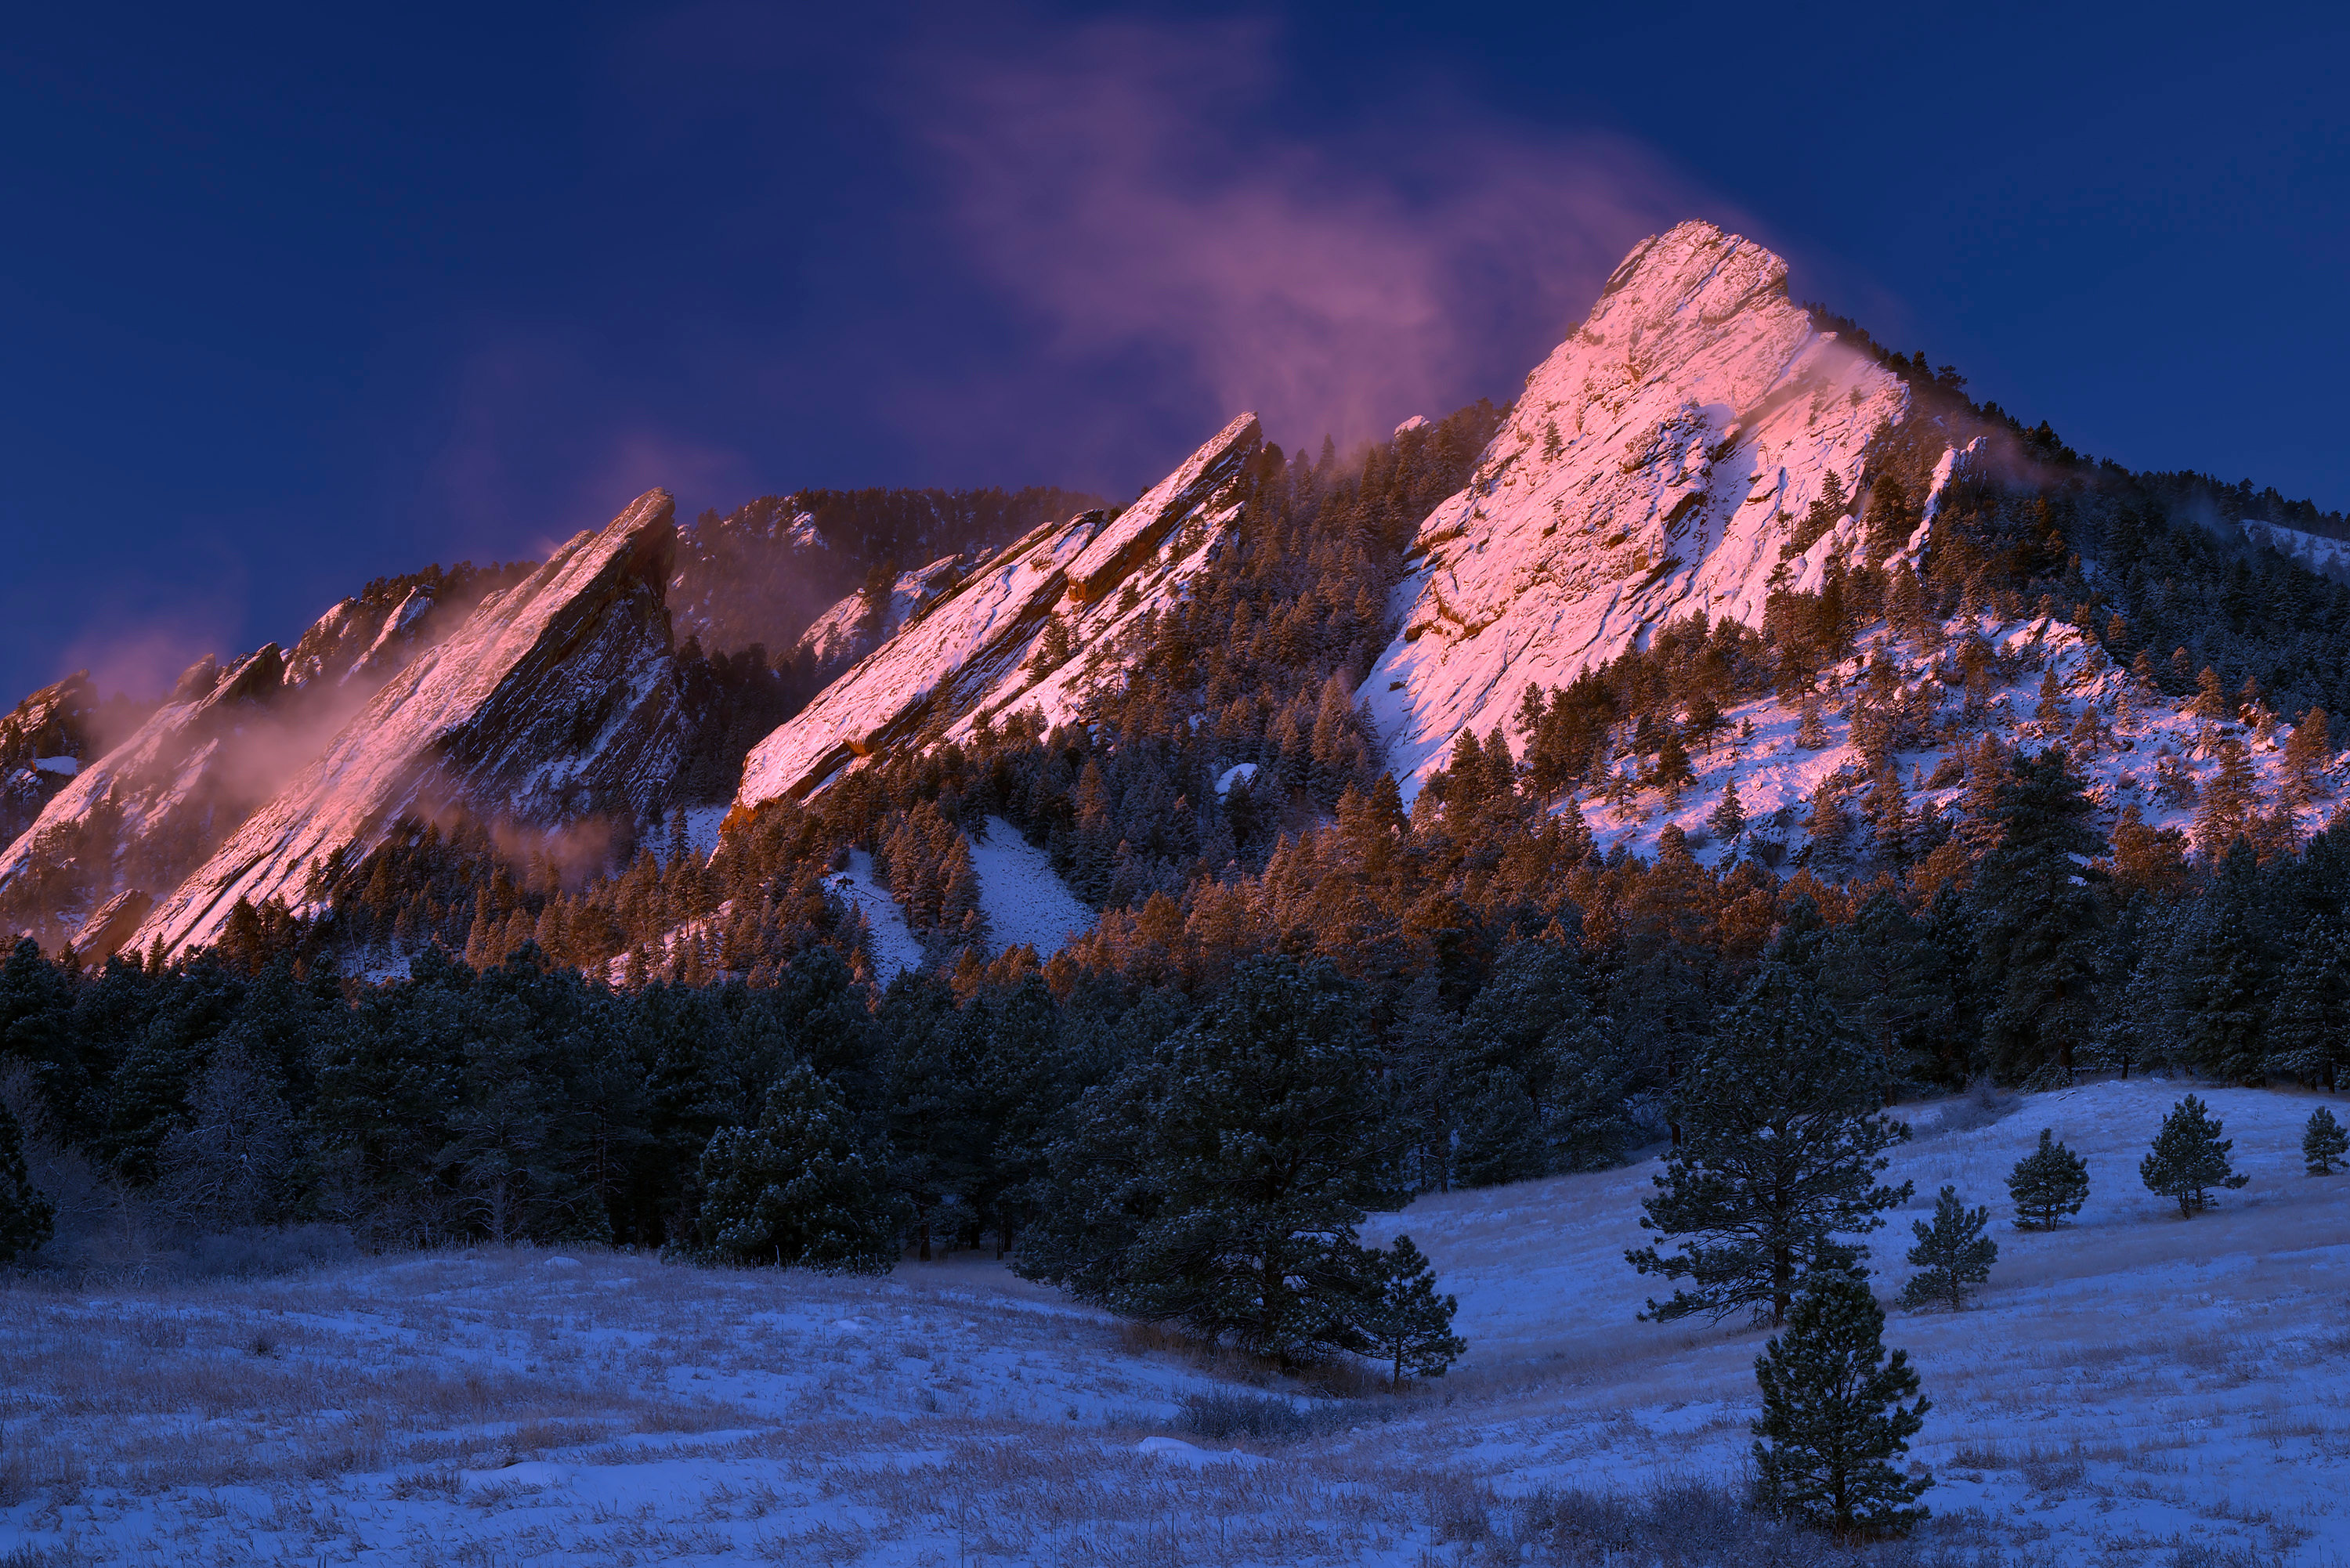 <div class='title'>           Winter Sunrise at the Flatirons         </div>                 <div class='description'>           Morning light bathes the Flatirons in pink after a fresh snowfall, while the wind whips snow into the air off of the rock faces. Purchase this photograph as a fine art print on paper, canvas, metal, or acrylic.         </div>